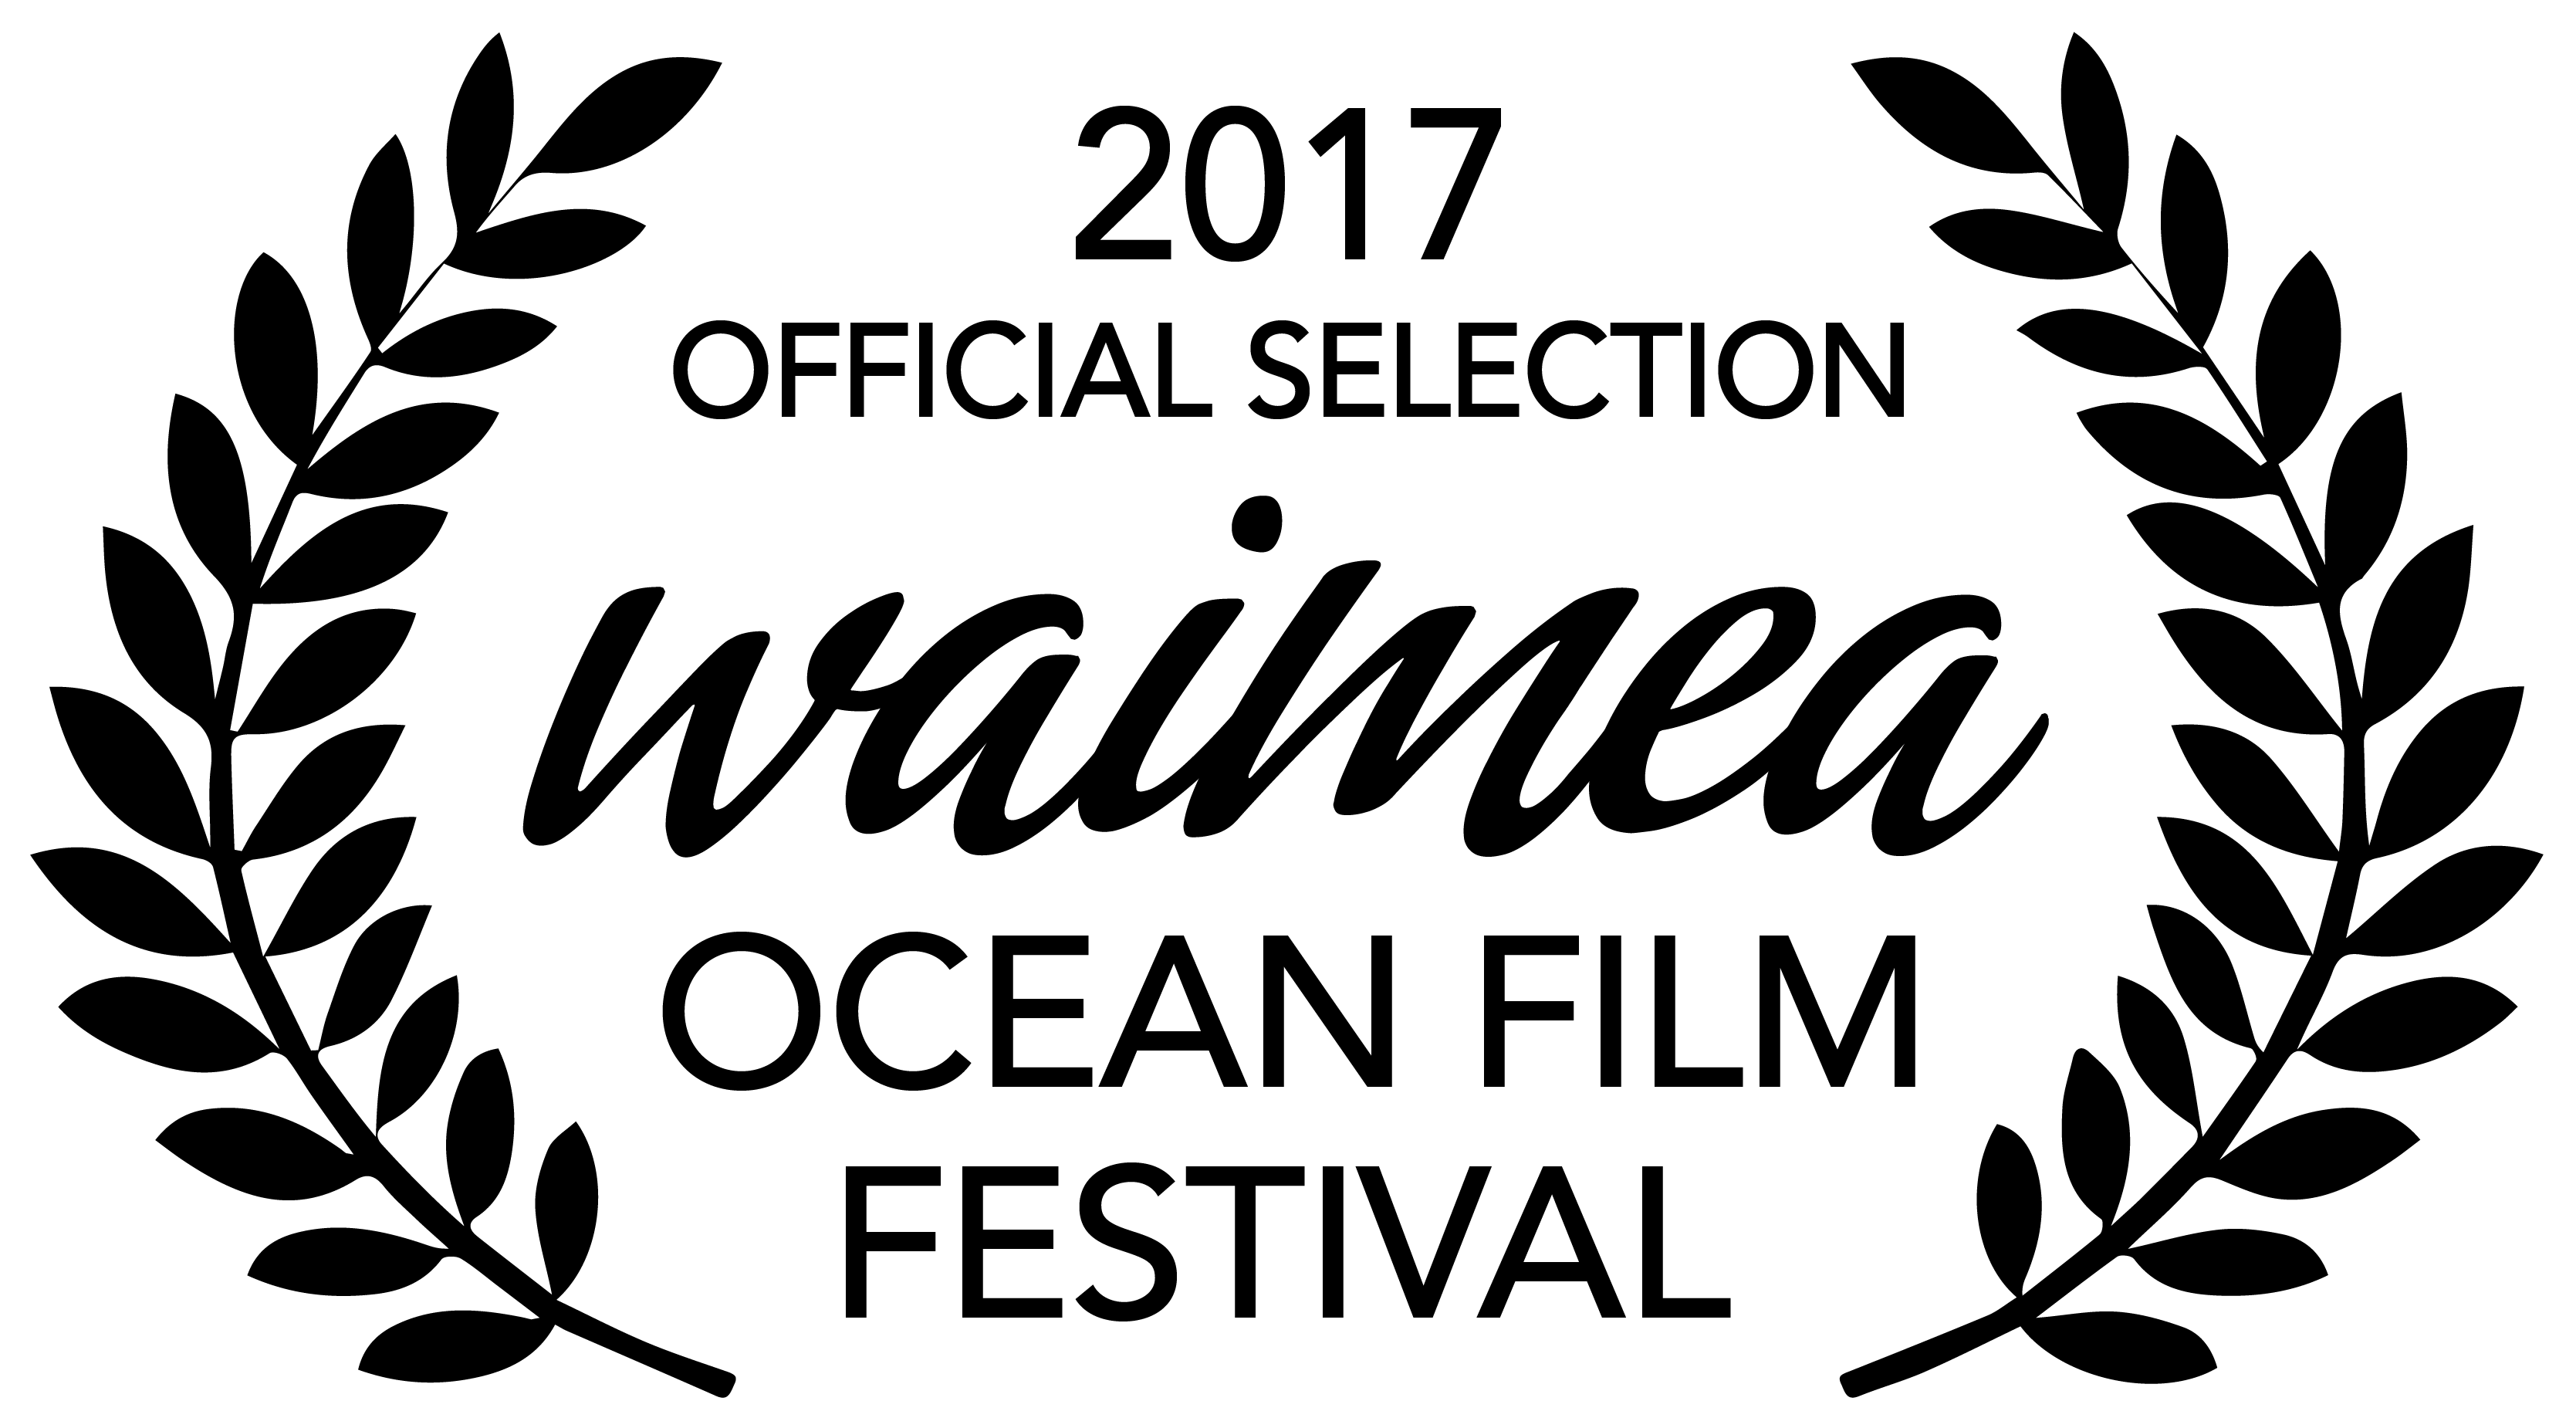 WOFF 17 Official Selection_2017_Black On White_Print